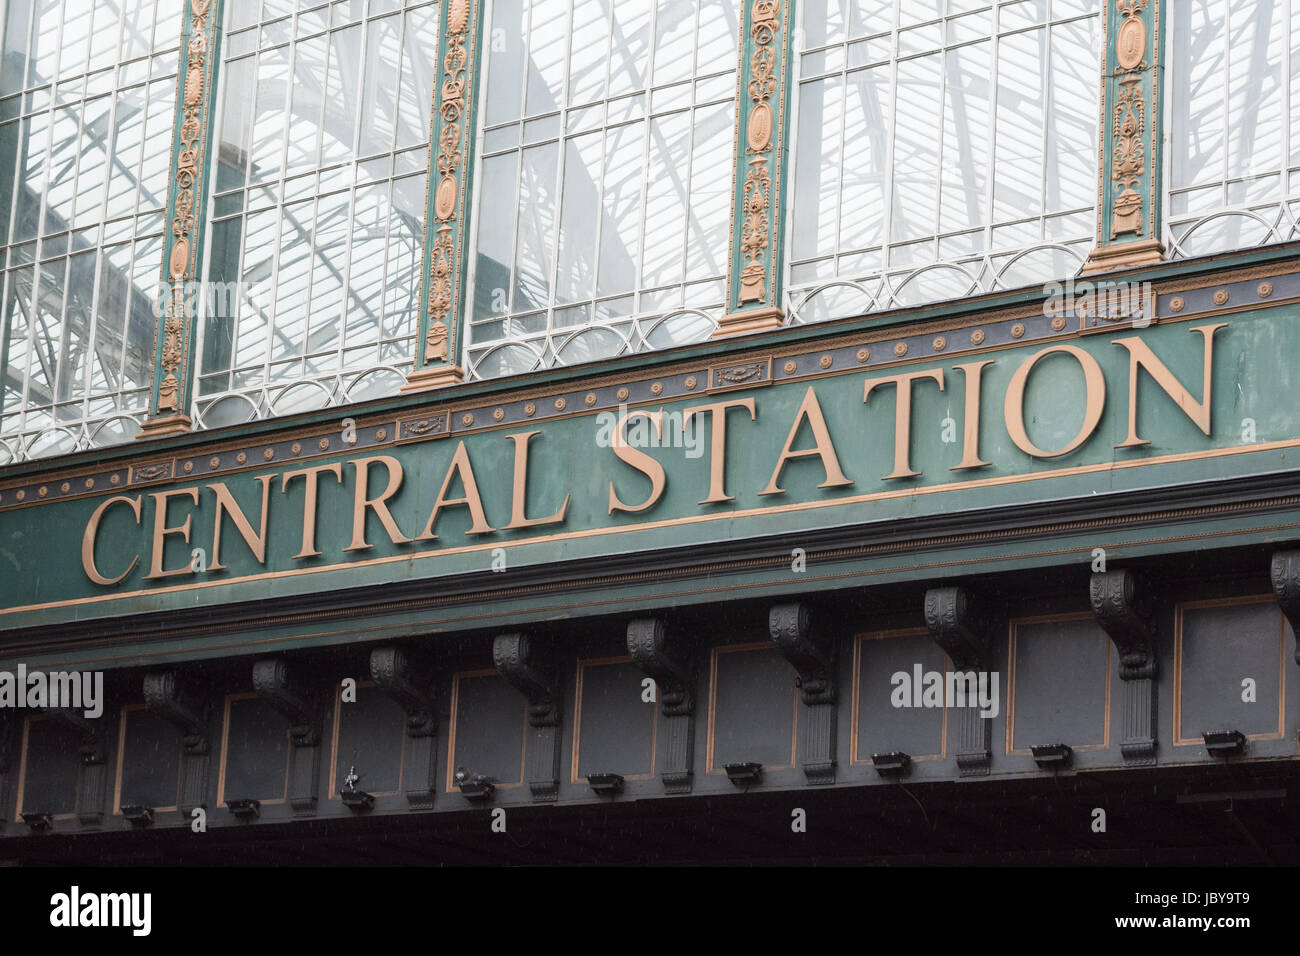 Central Station sign, Glasgow Central Station, Glasgow, Scotland, UK - Stock Image